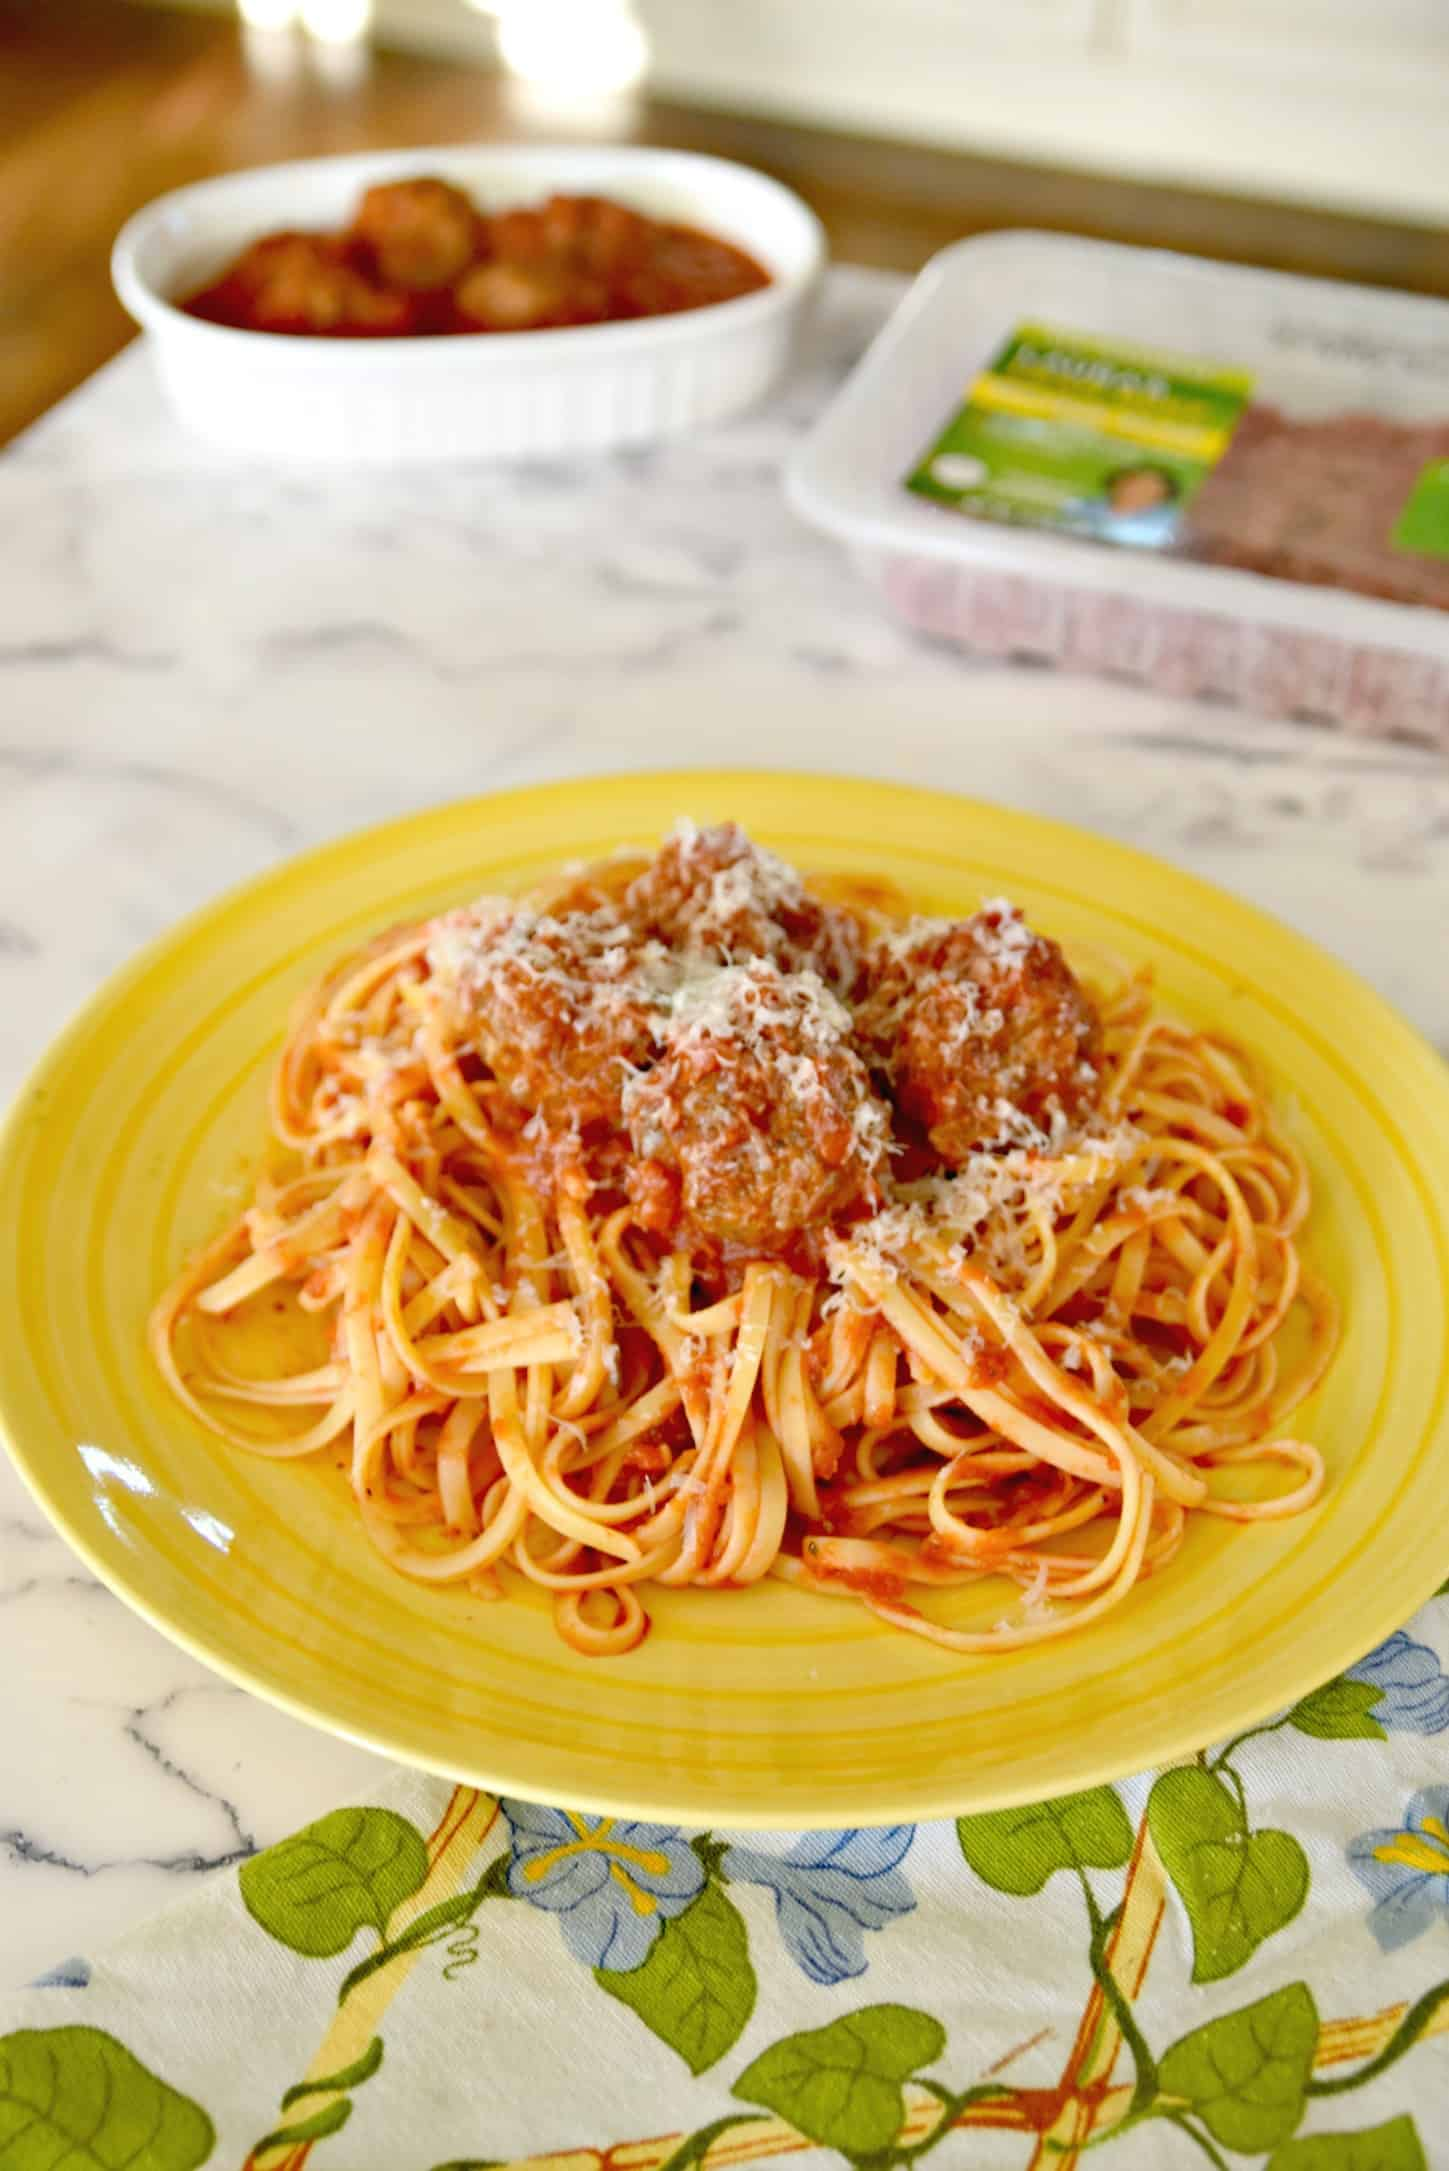 spaghetti and meatballs with Parmesan cheese